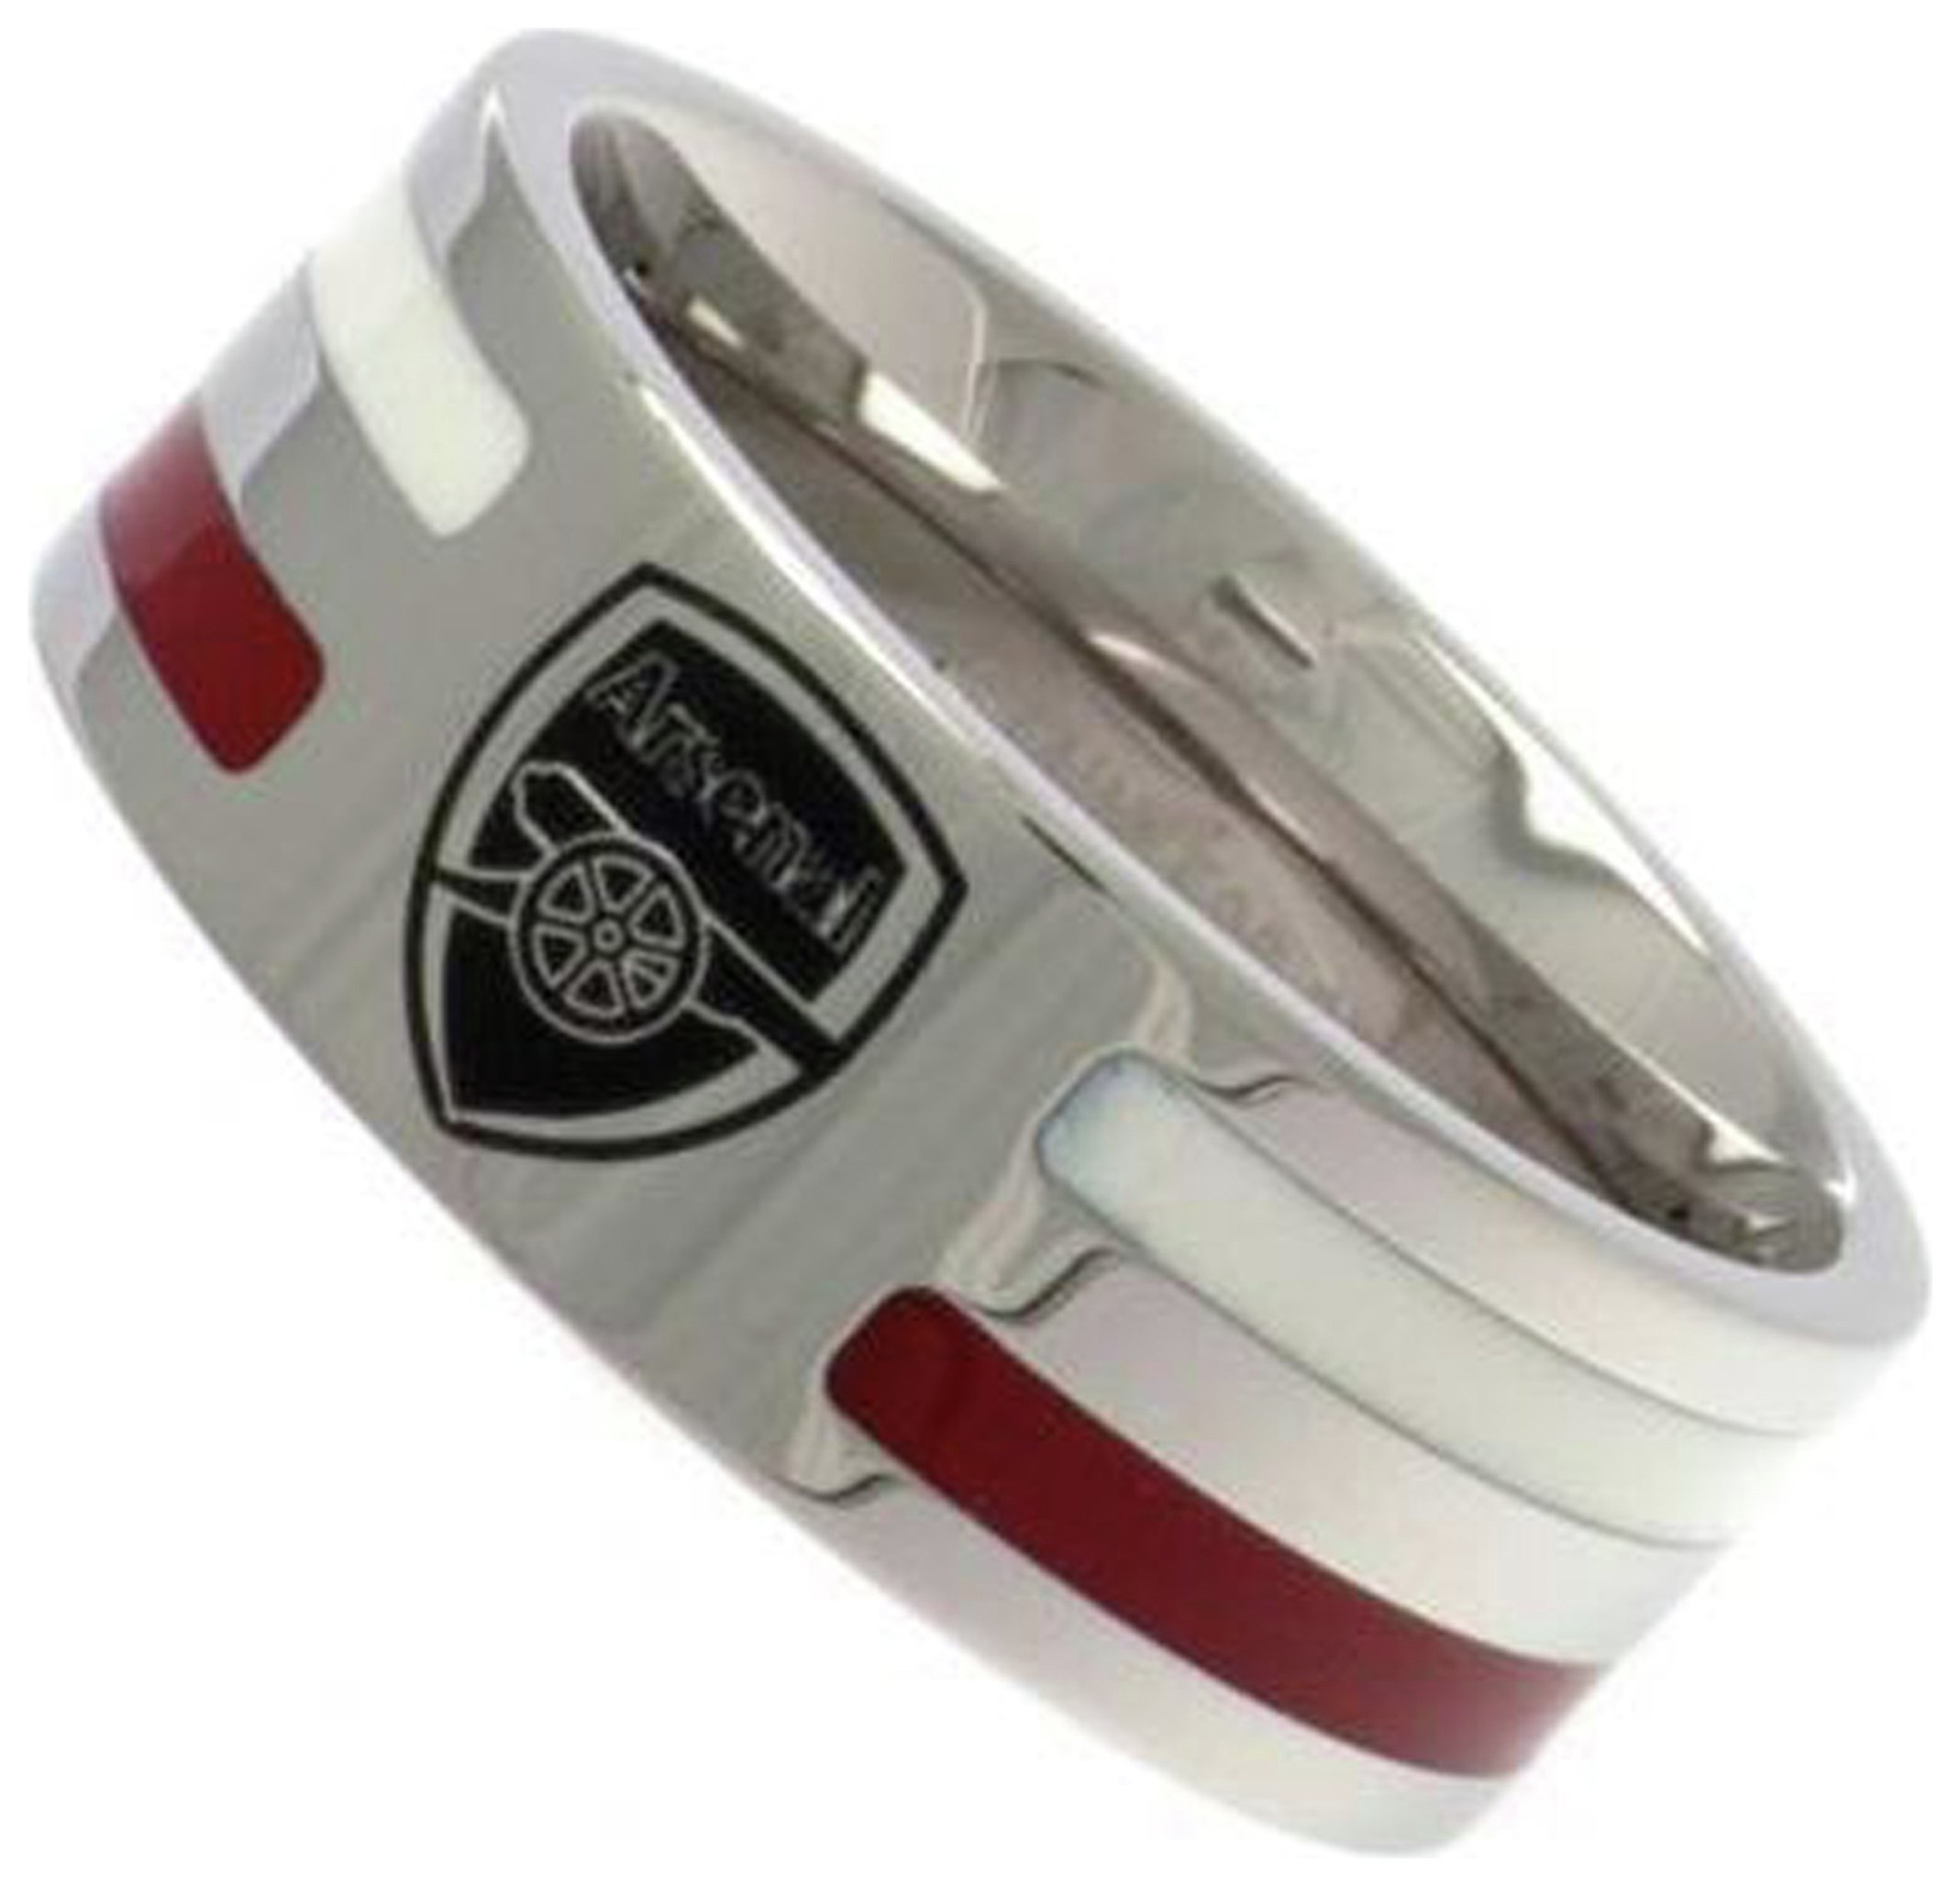 Image of Stainless Steel Arsenal Striped Ring - Size X